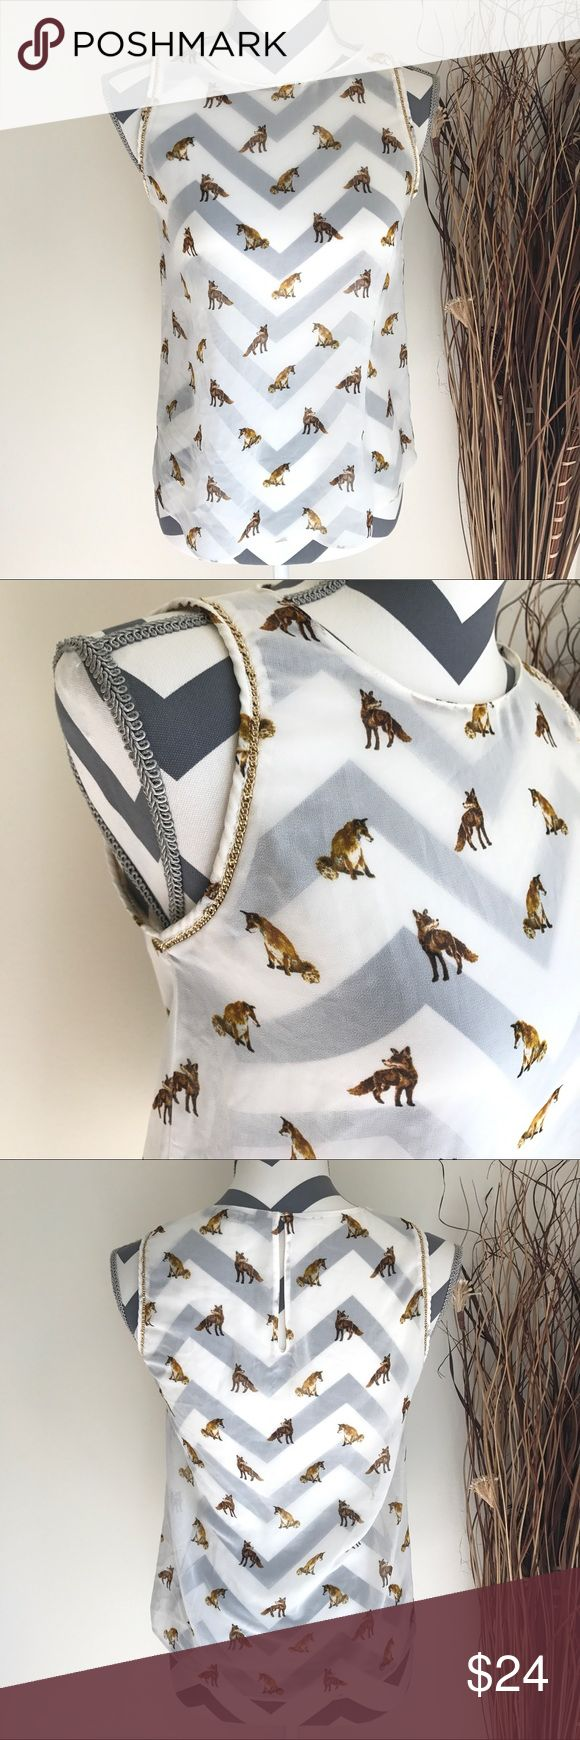 "Zara Trafaluc Fox Print Blouse Great conditions. Chain detail in arm hem. Back keyhole. 17"" Chest, 13"" length armpit down Zara Tops Blouses"